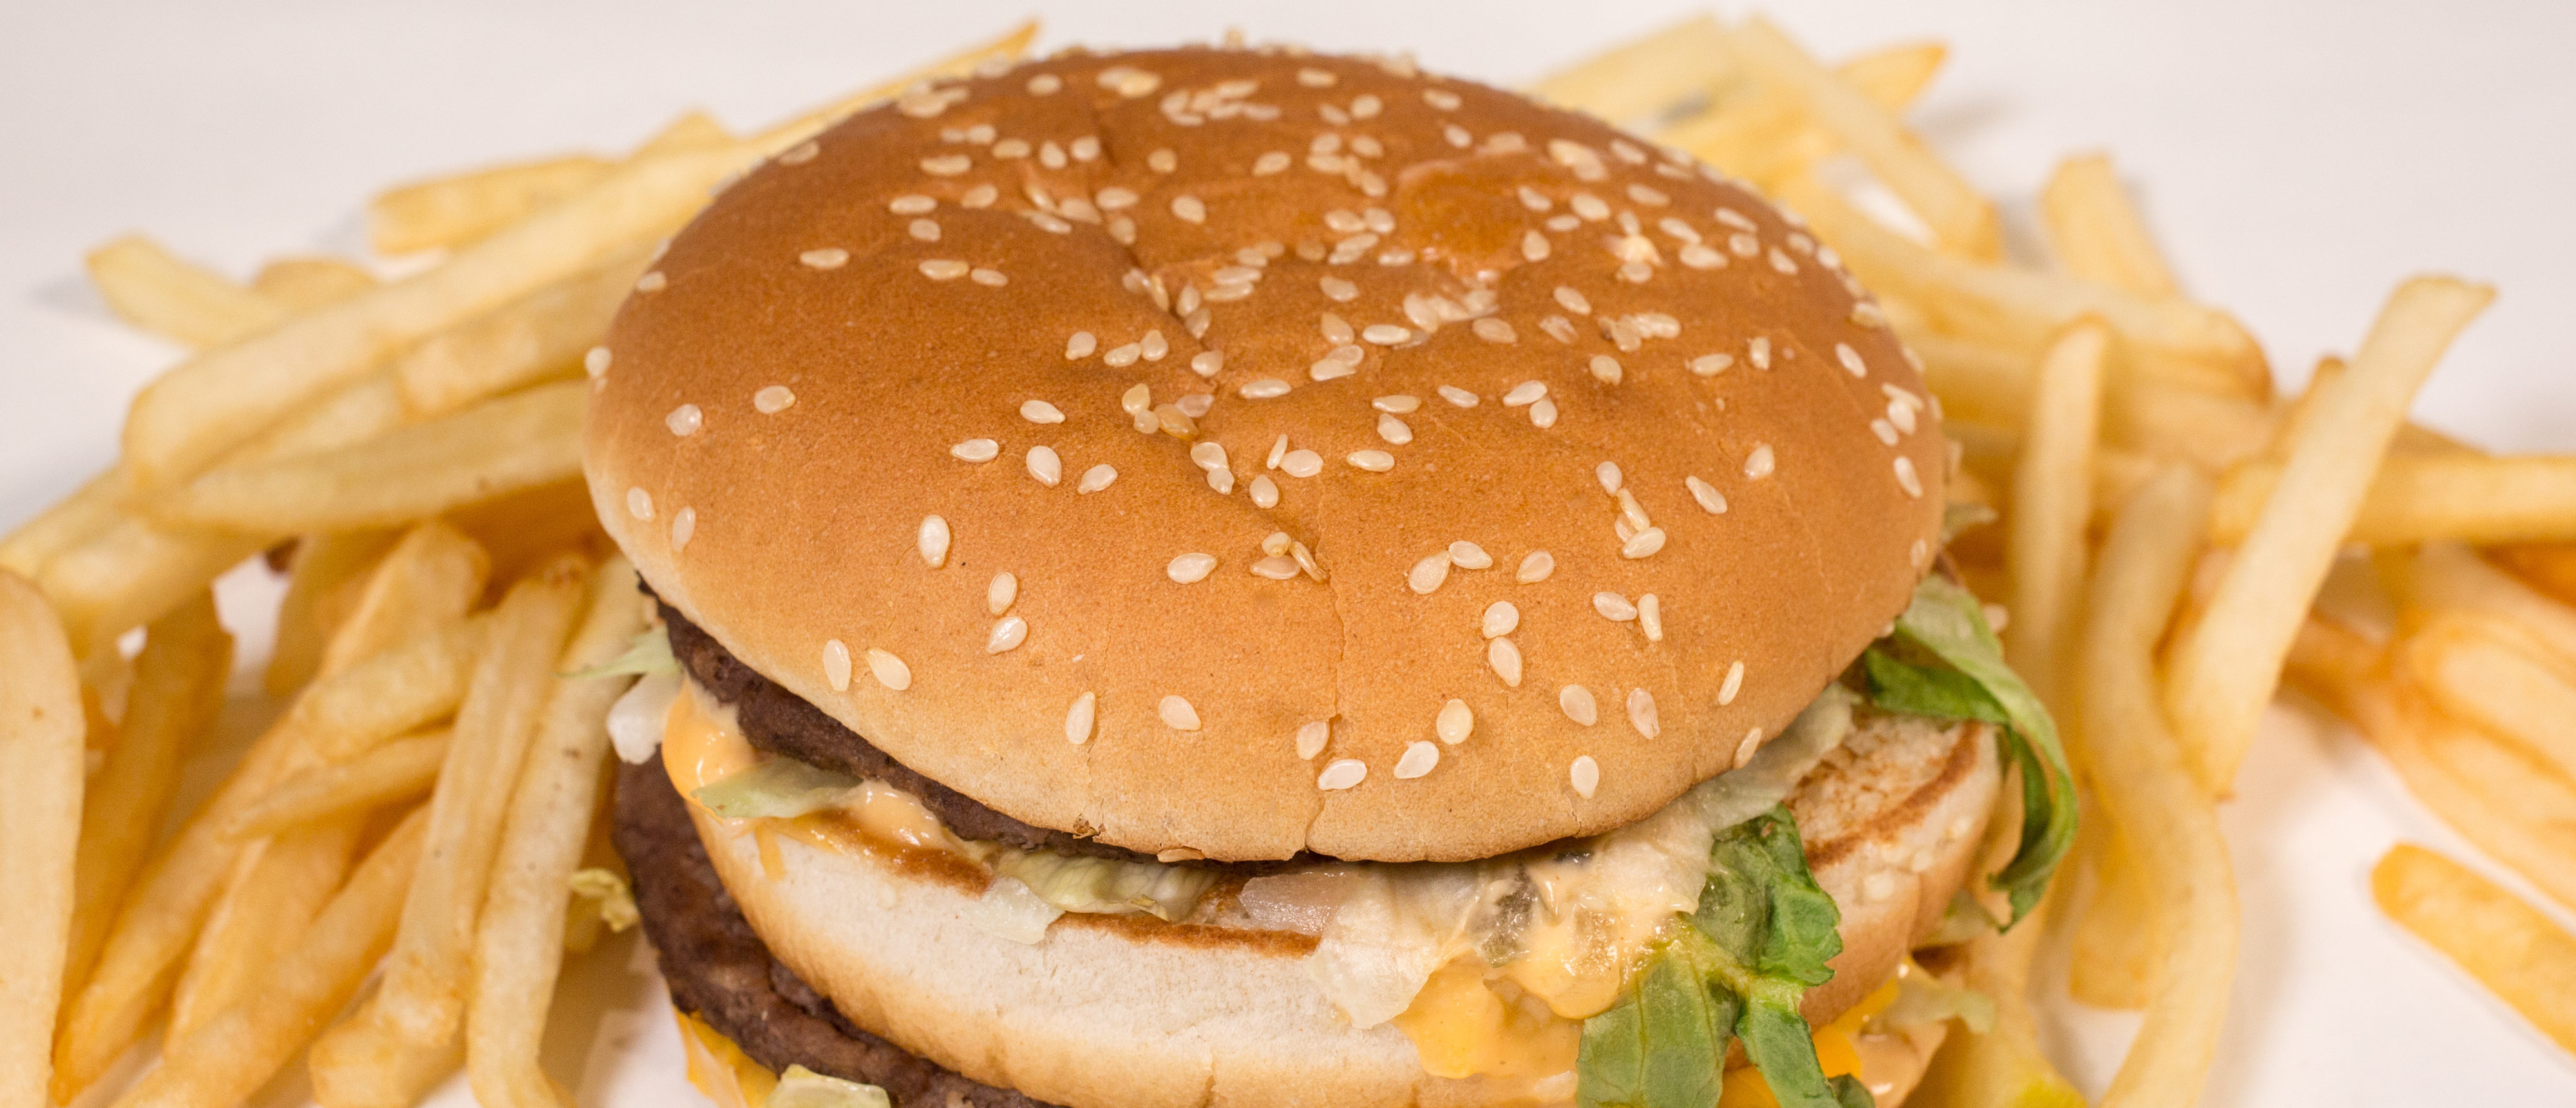 Vote What Is Your Favorite Fast Food Place